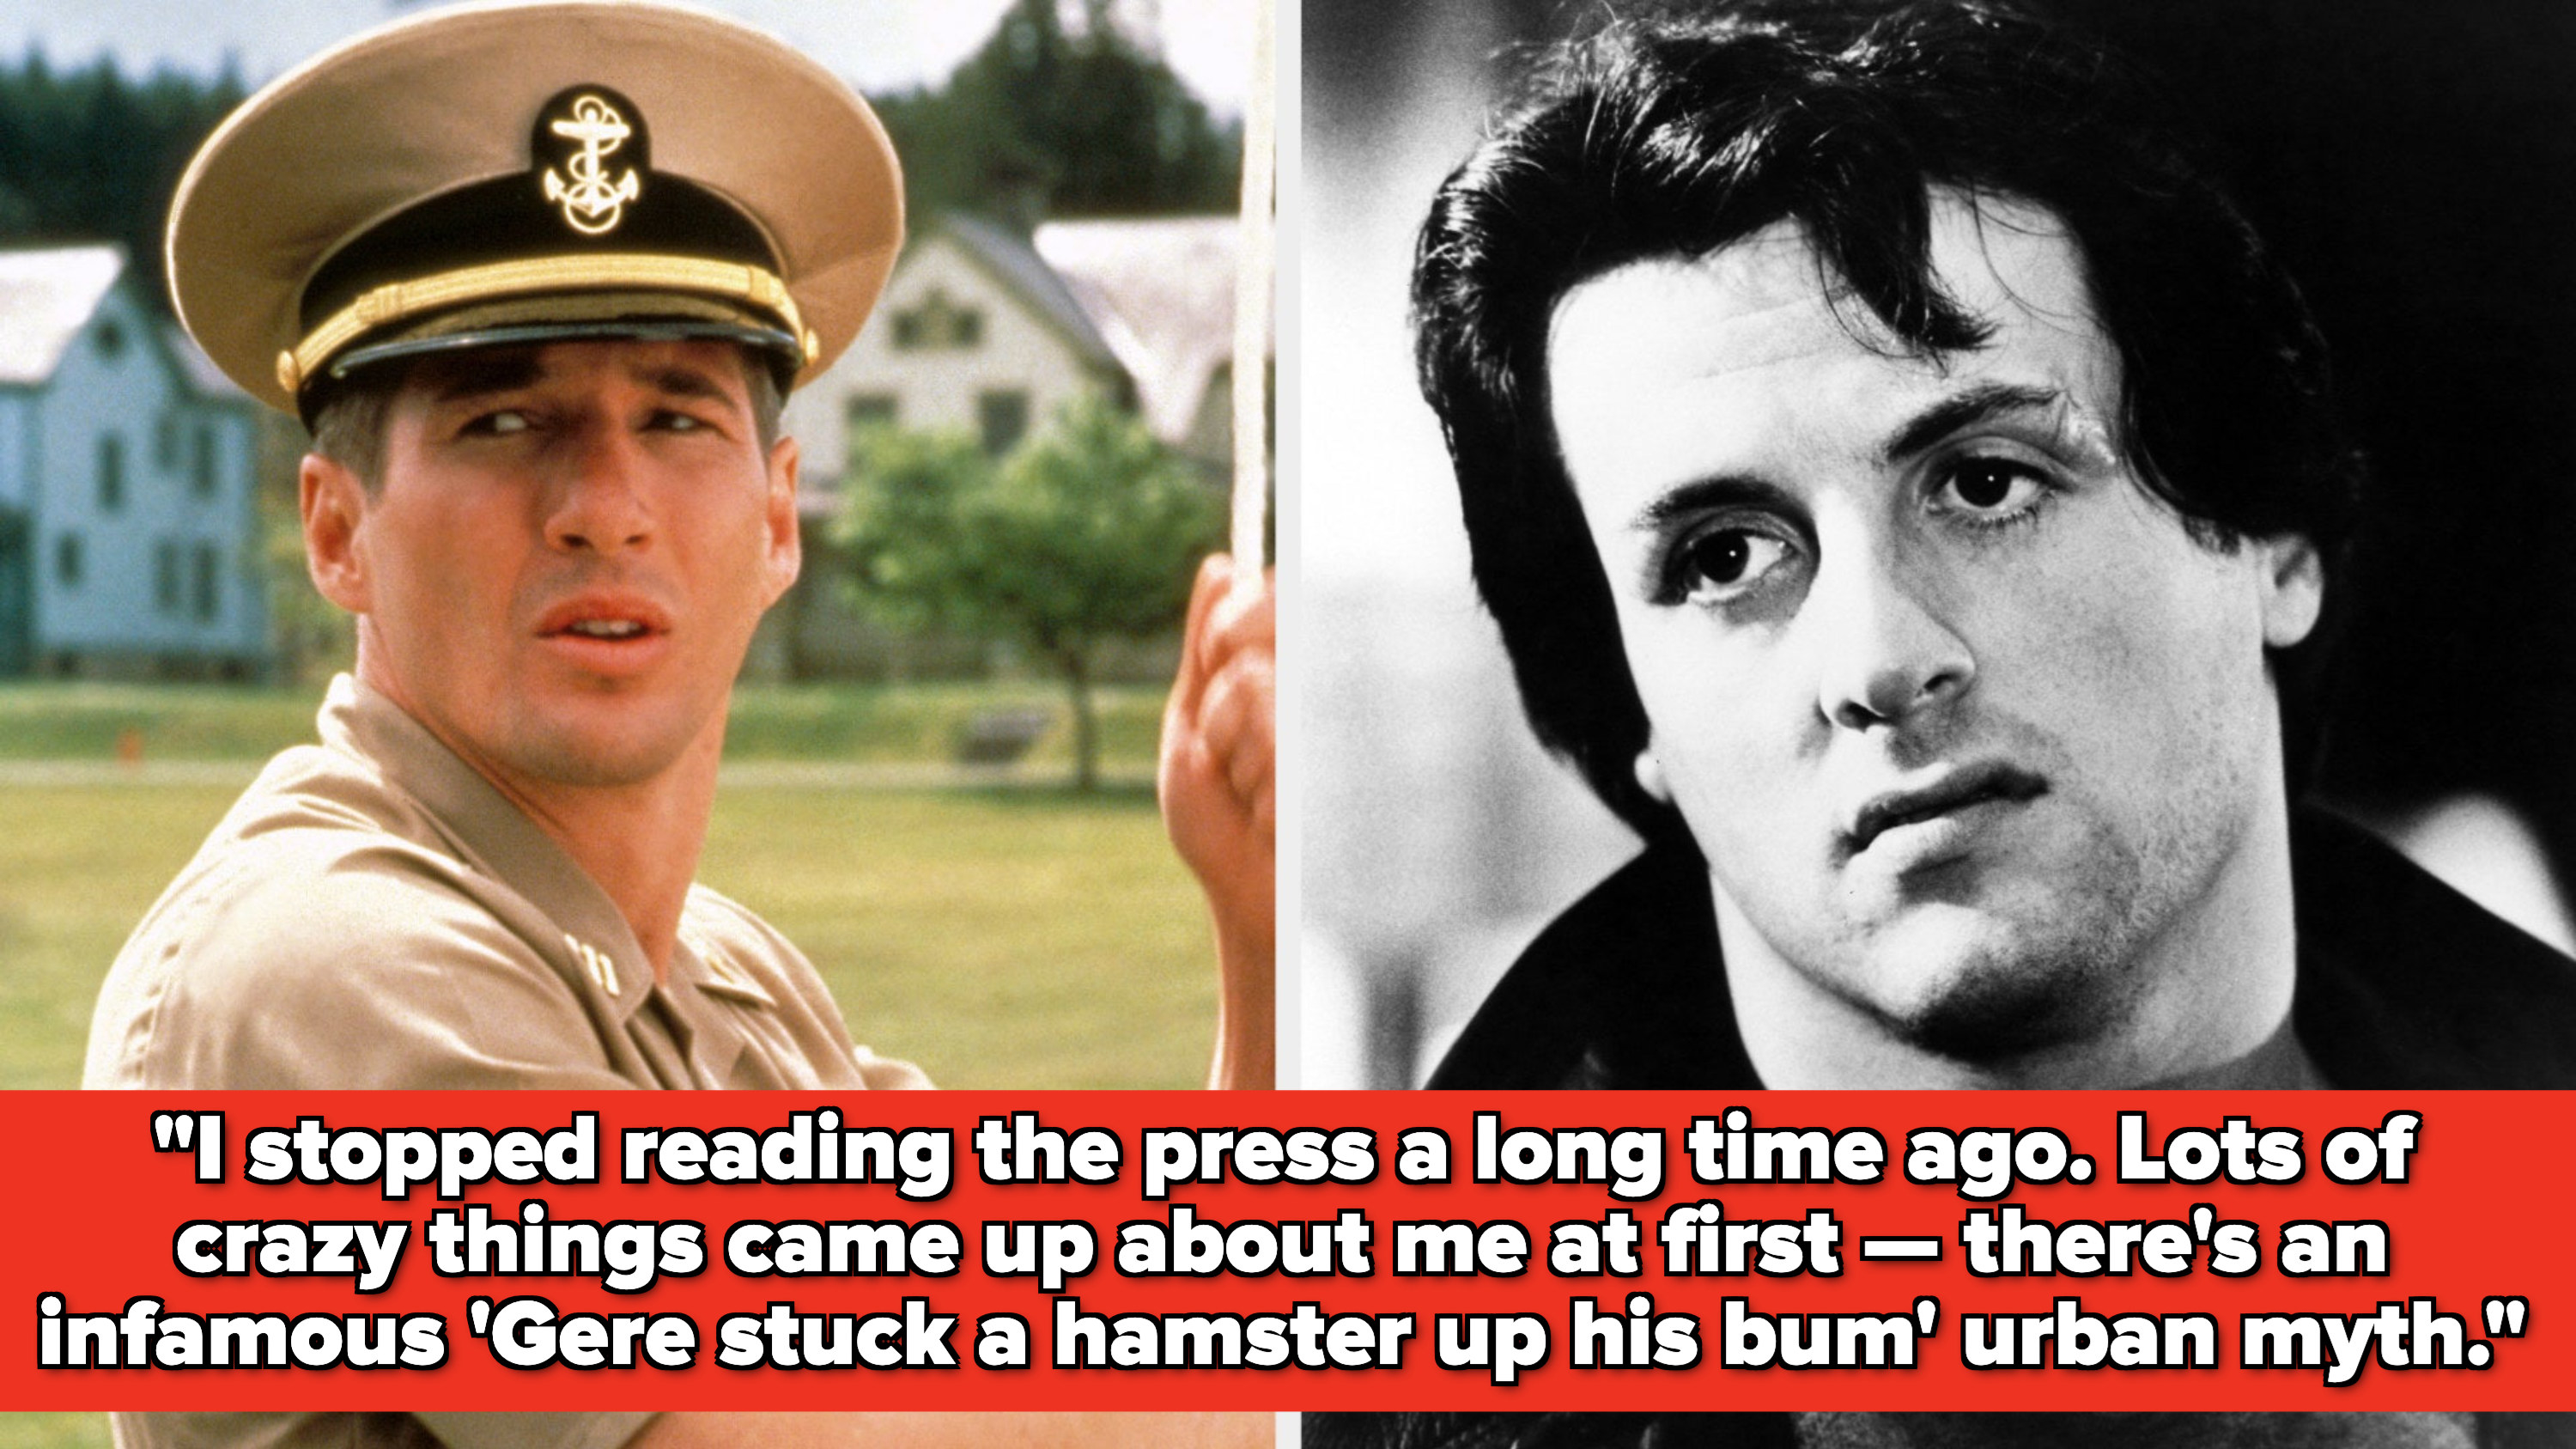 """Side-by-side images of Richard Gere and Sylvester Stallone, with a Richard Gere quote: """"I stopped reading the press a long time ago. Lots of crazy things came up about me at first -- there's an infamous 'Gere stuck a hamster up his bum' urban myth"""""""